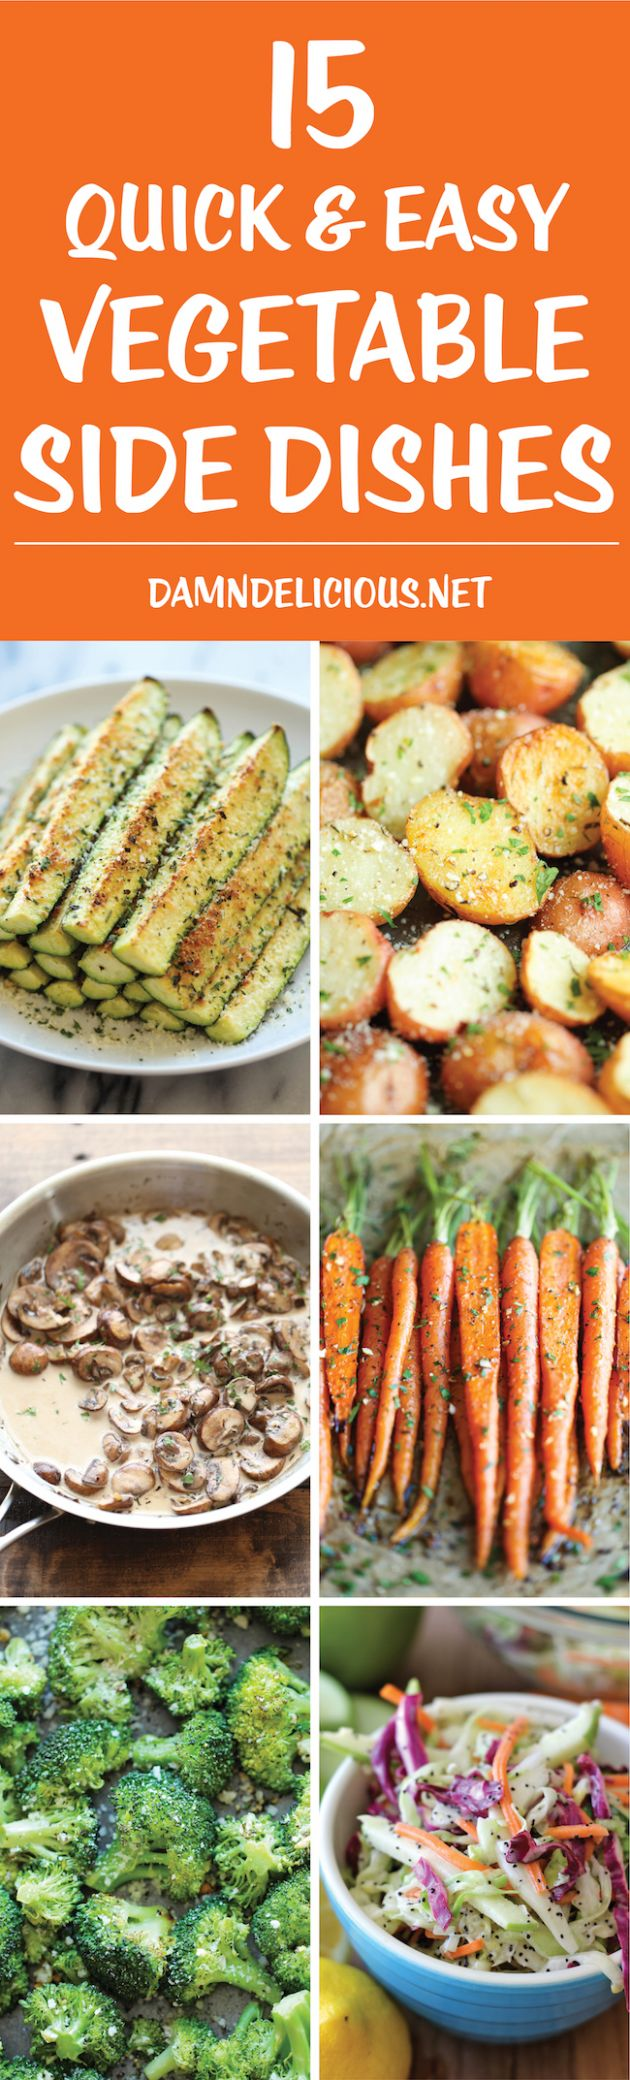 10 Quick and Easy Vegetable Side Dishes - Damn Delicious - Vegetable Recipes As Side Dish